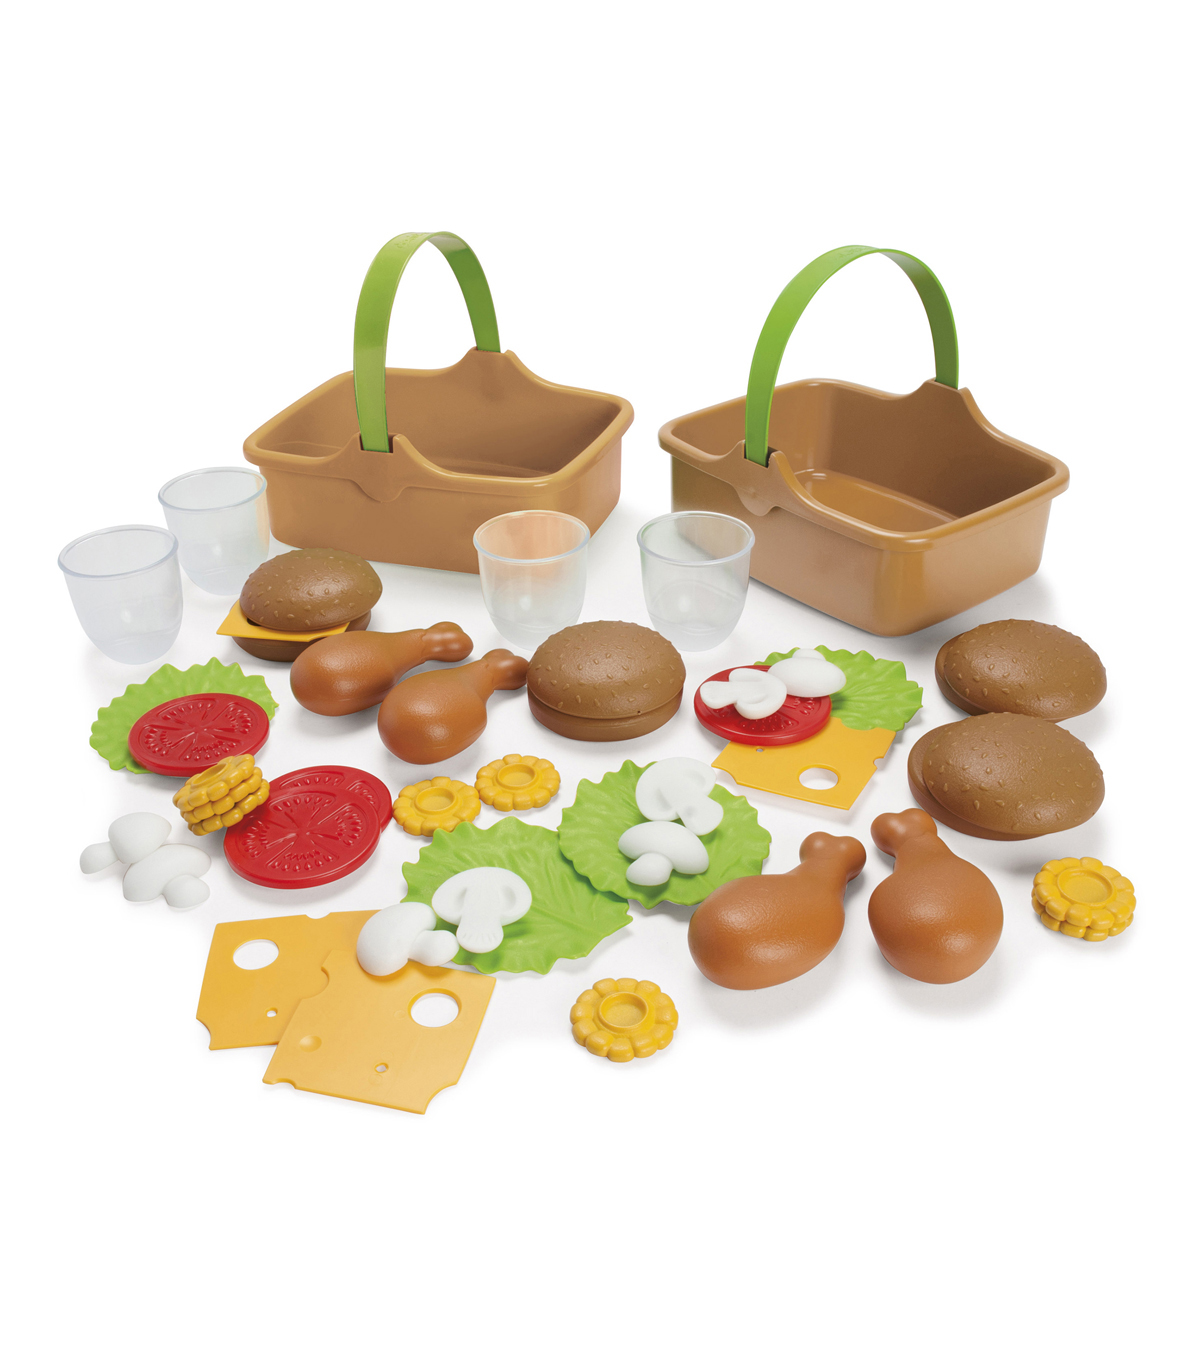 My Green Garden Picnic Set